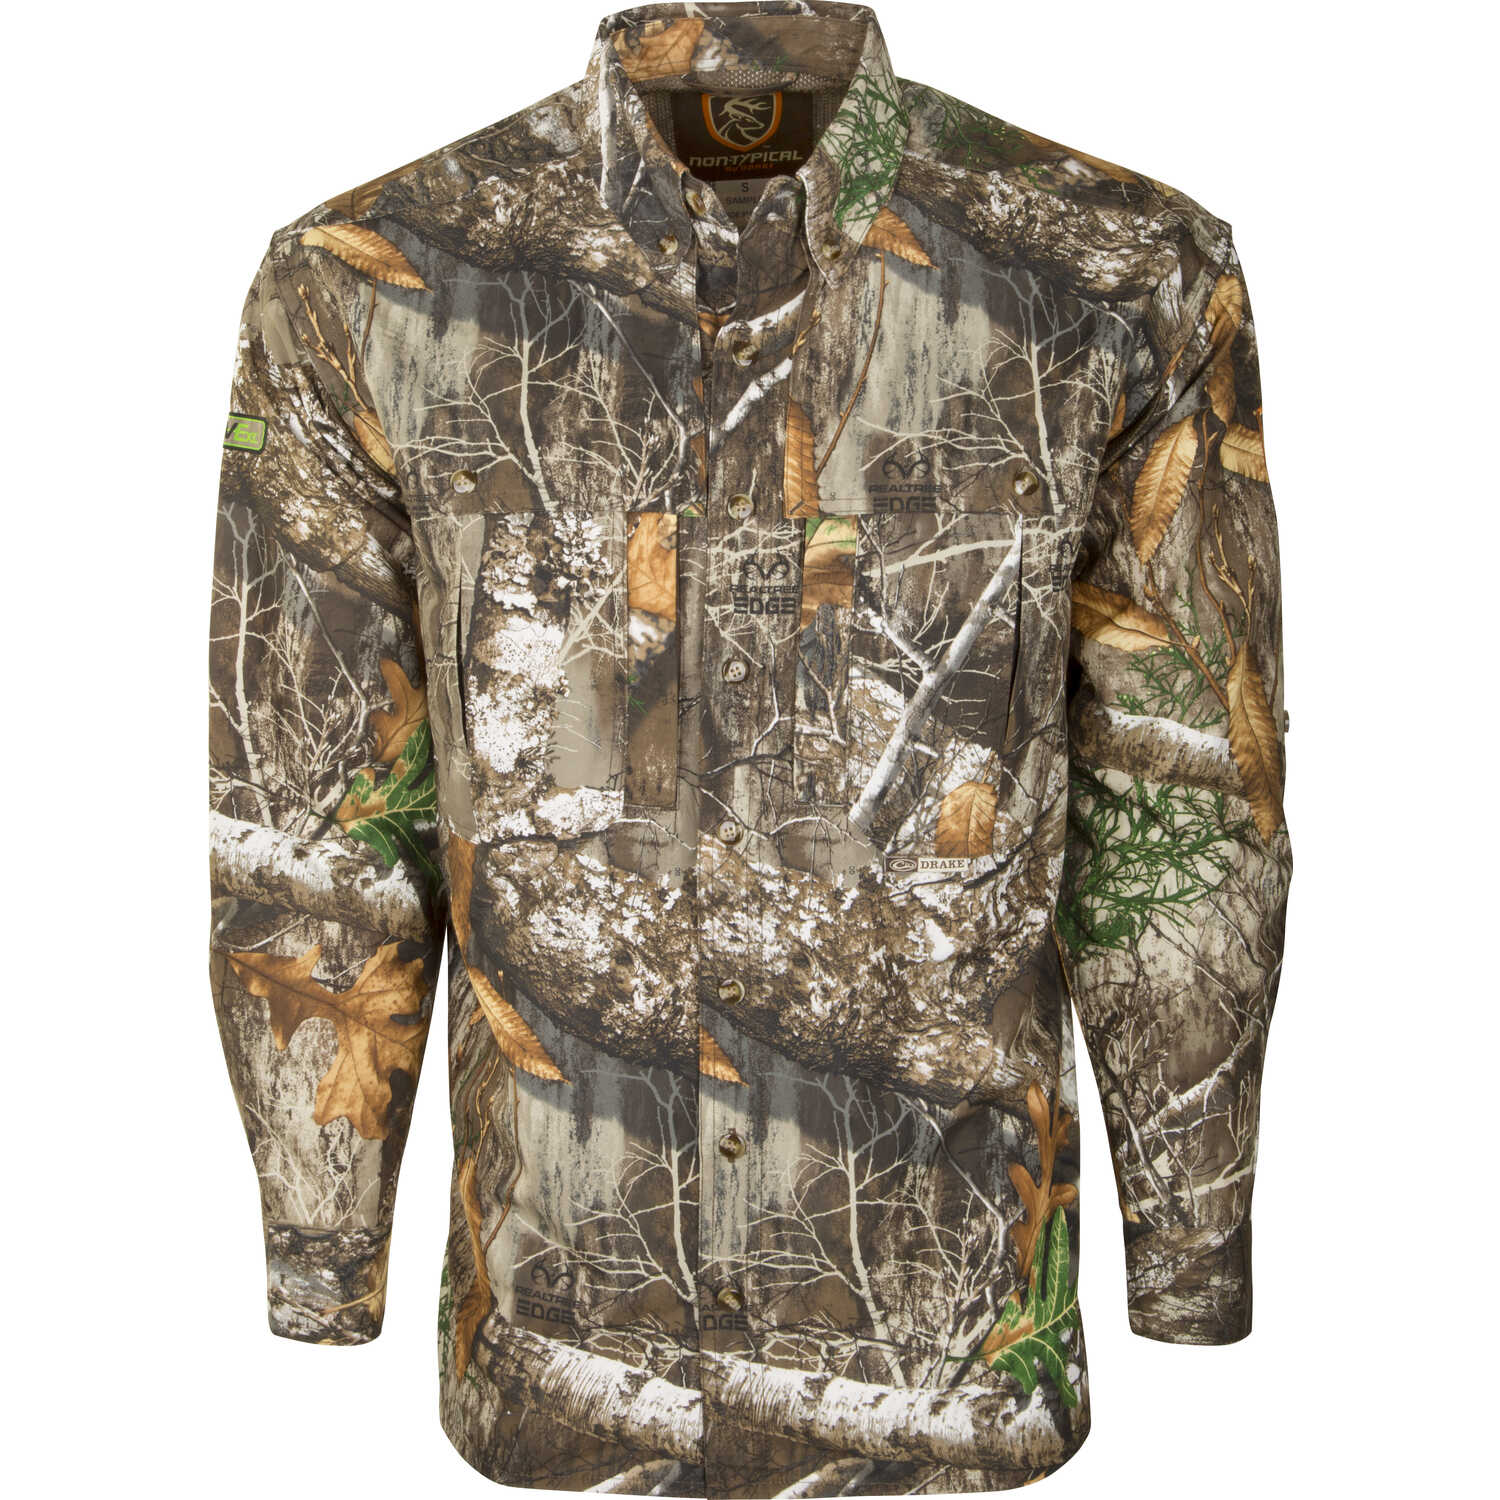 Drake  Dura-Lite  L  Long Sleeve  Men's  Collared  Realtree Edge  Shirt